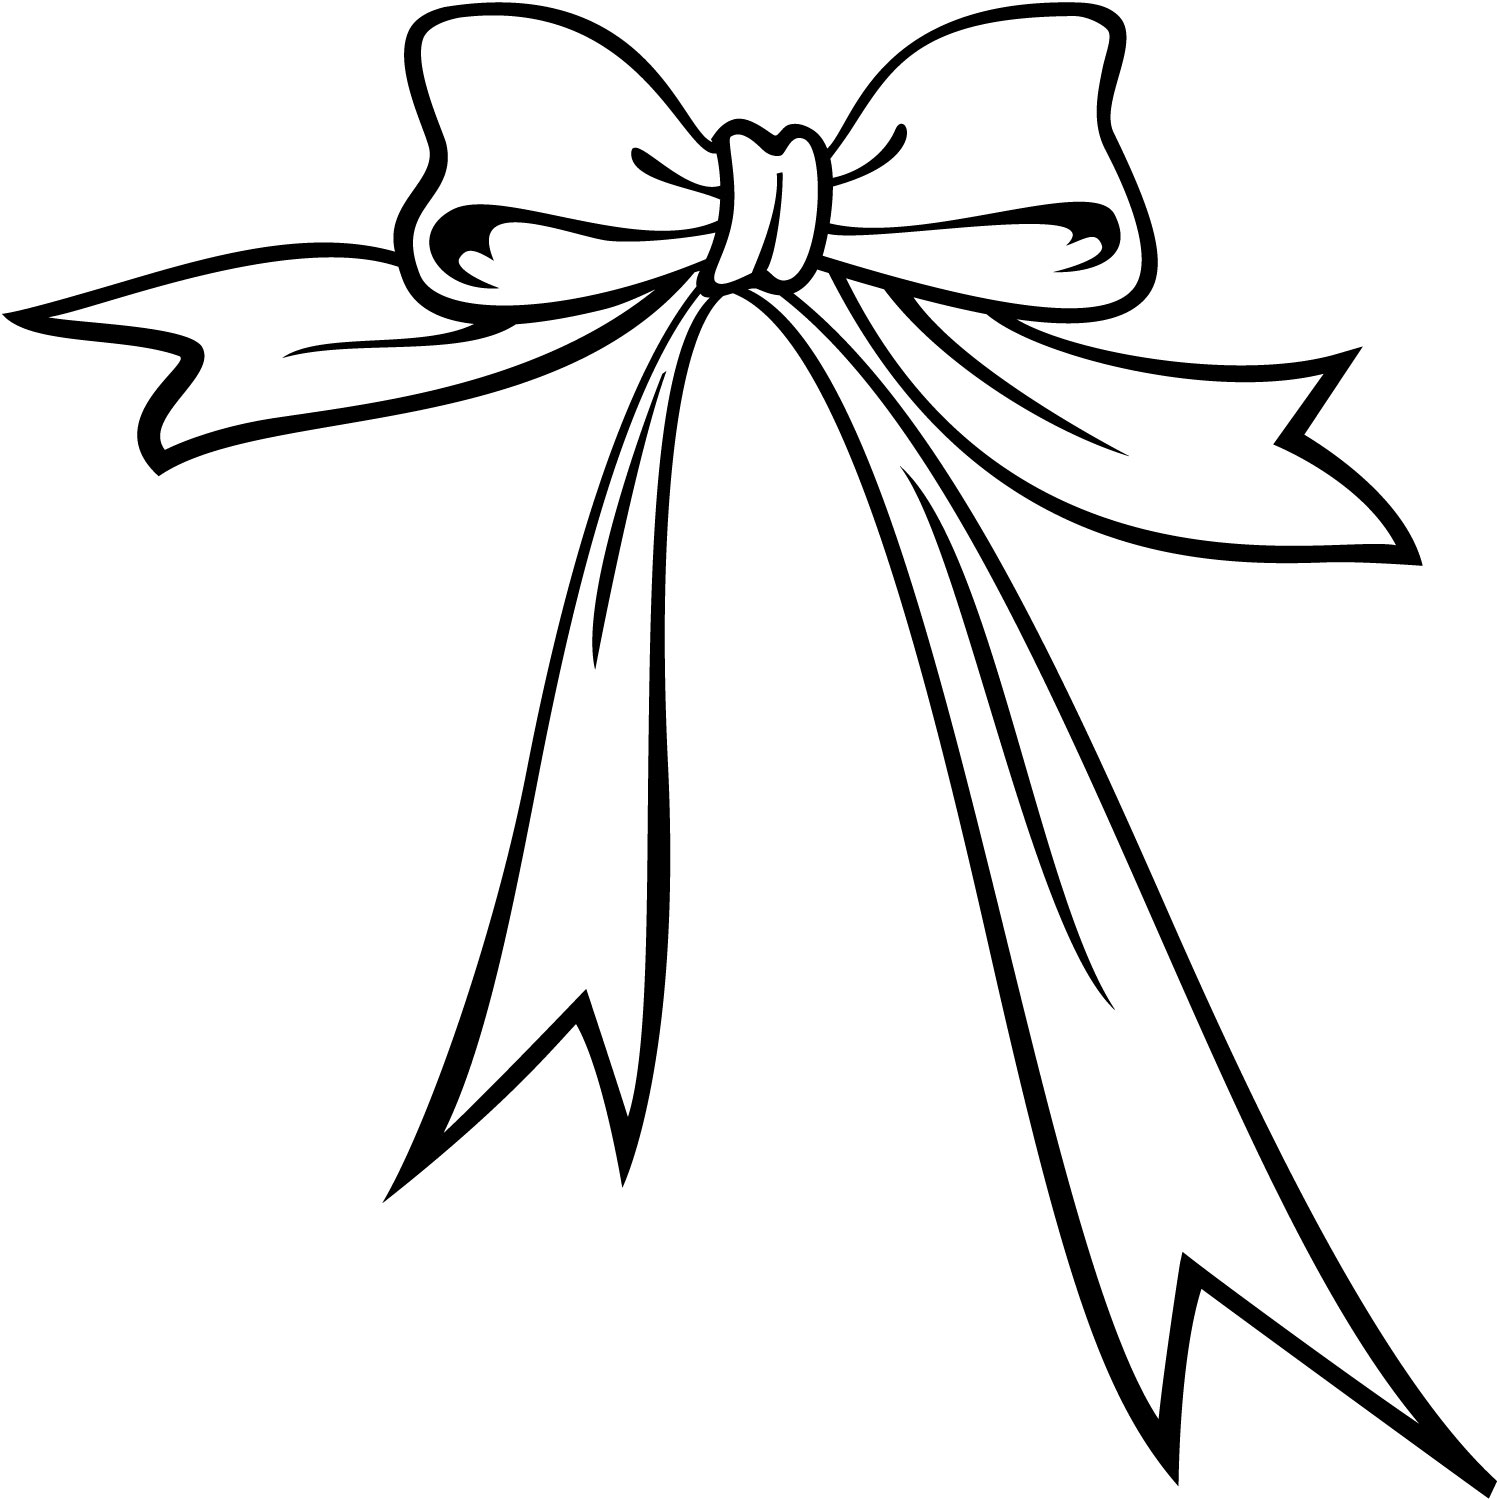 Bow with tails clipart black and white png black and white stock Bow clip art google search art no background clip art wallhi - Clipartix png black and white stock